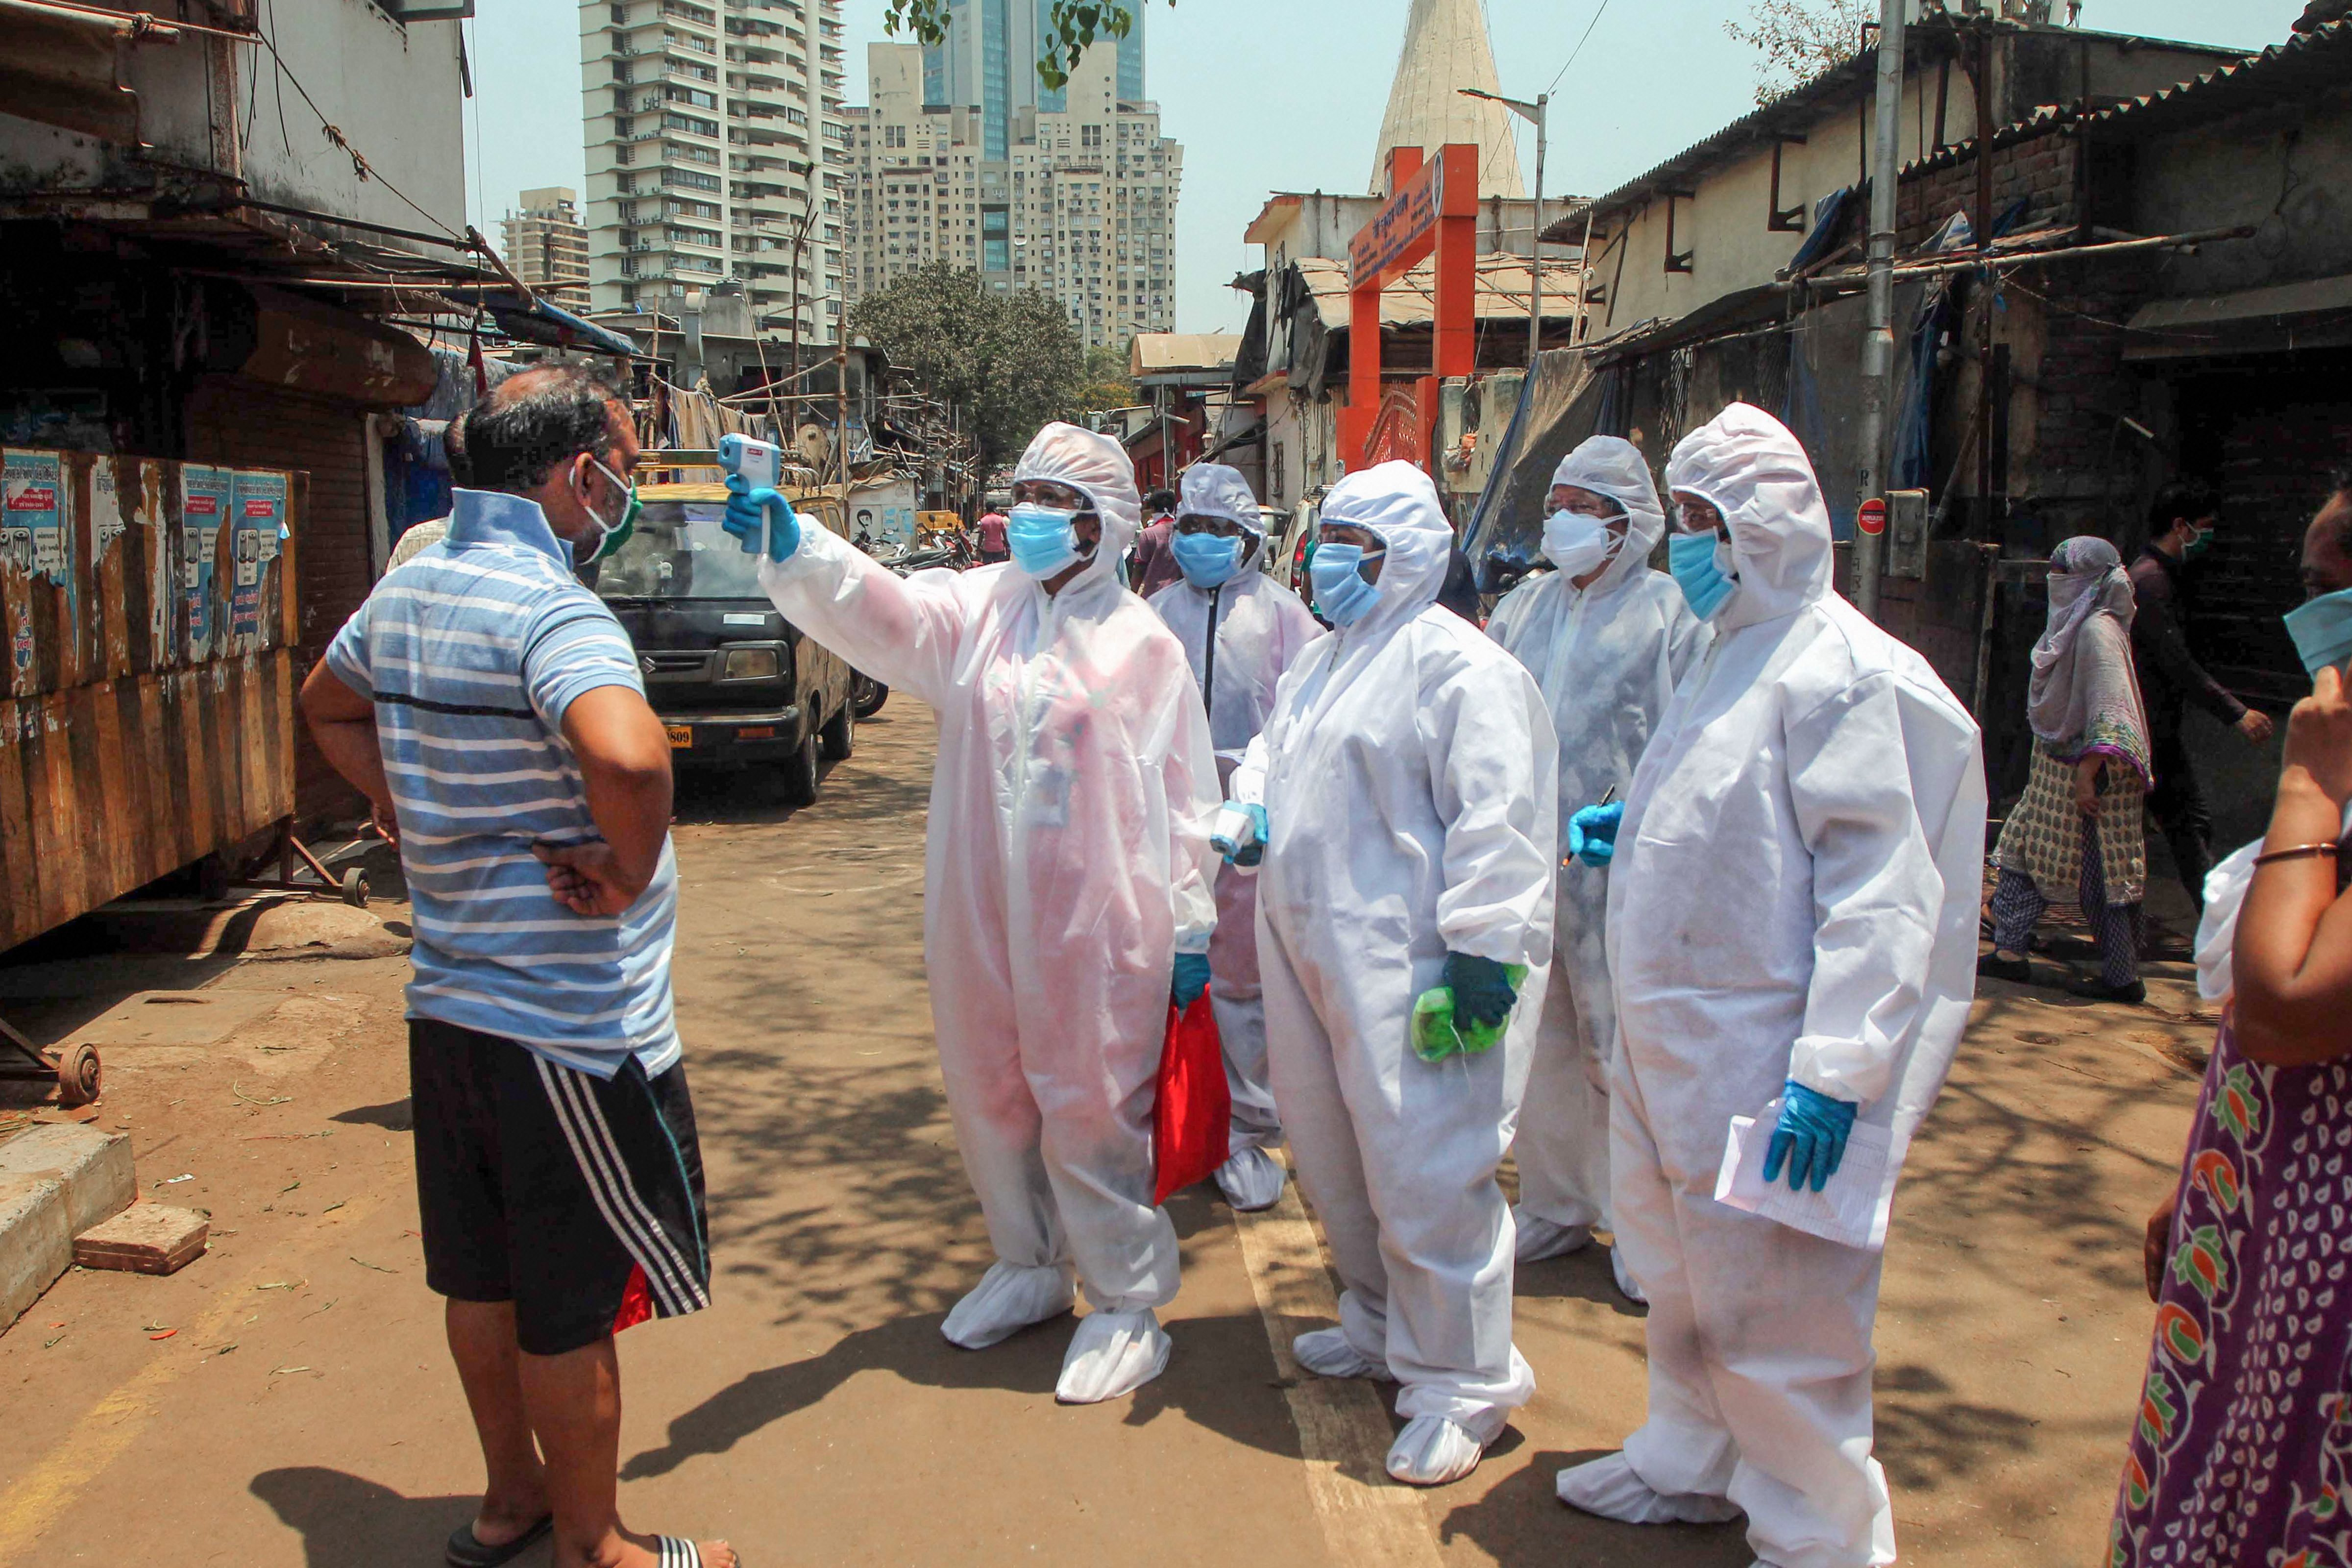 Doctors wearing protective suits check residents with an electronic thermometer inside a slum in Worli during the nationwide lockdown to curb the spread of coronavirus in Mumbai, Friday, April 17, 2020.